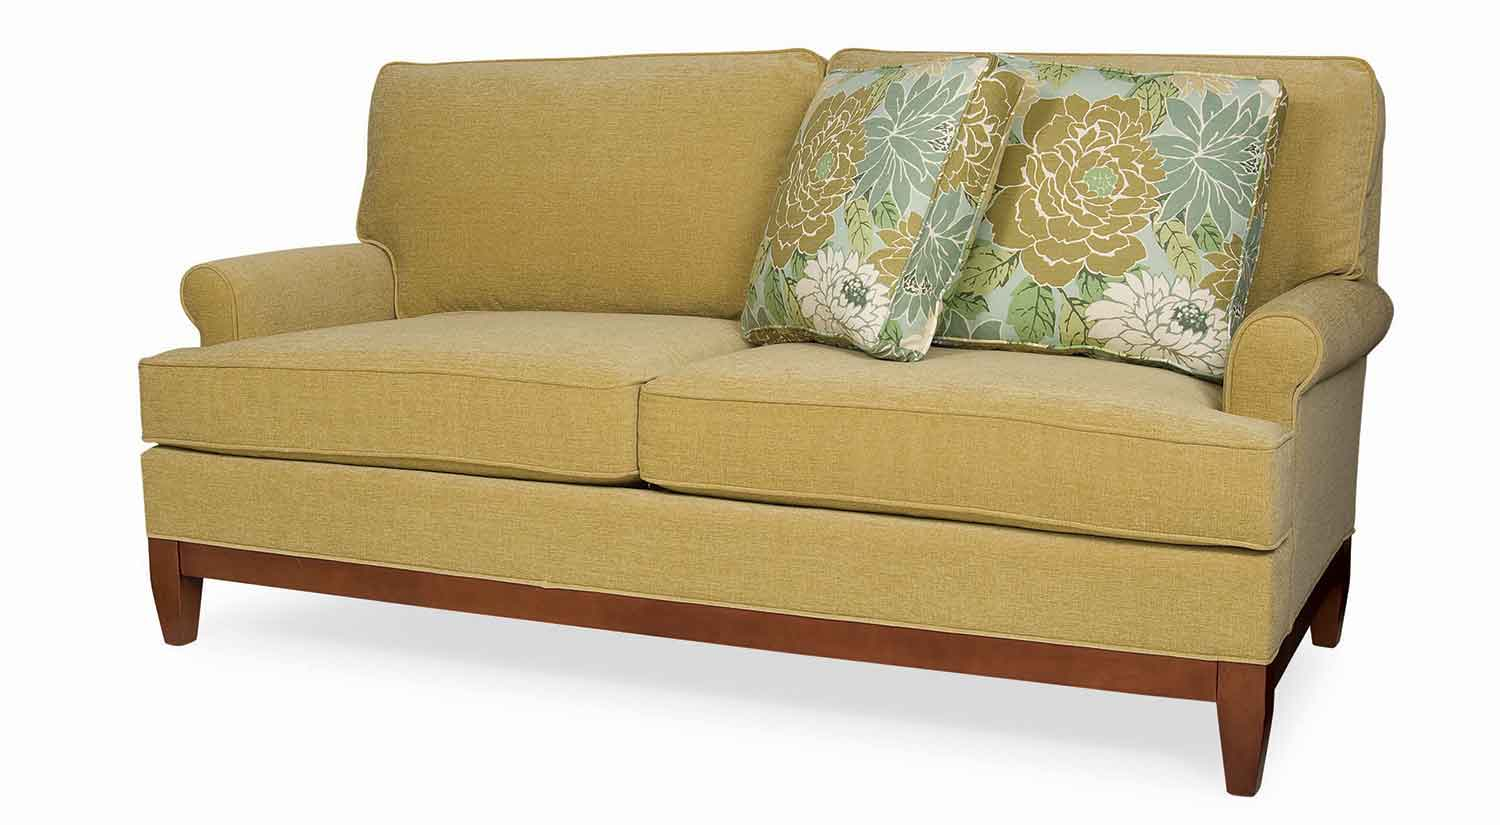 circle furniture camden apartment sofa small sofas boston circle